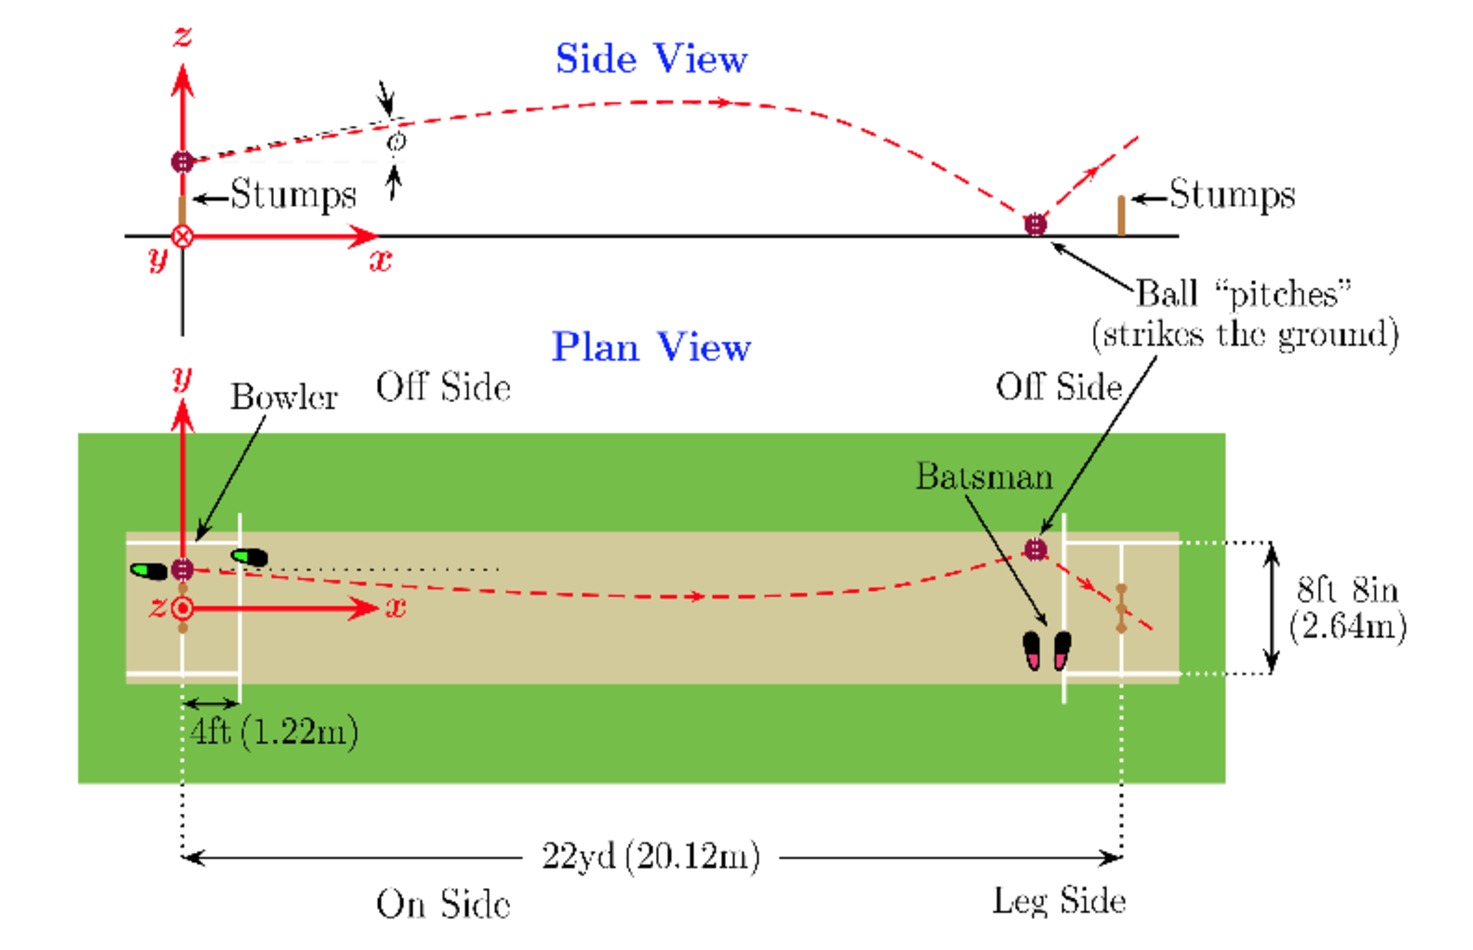 beach volleyball court dimensions diagram could the physics of spin bowling turn the ashes around